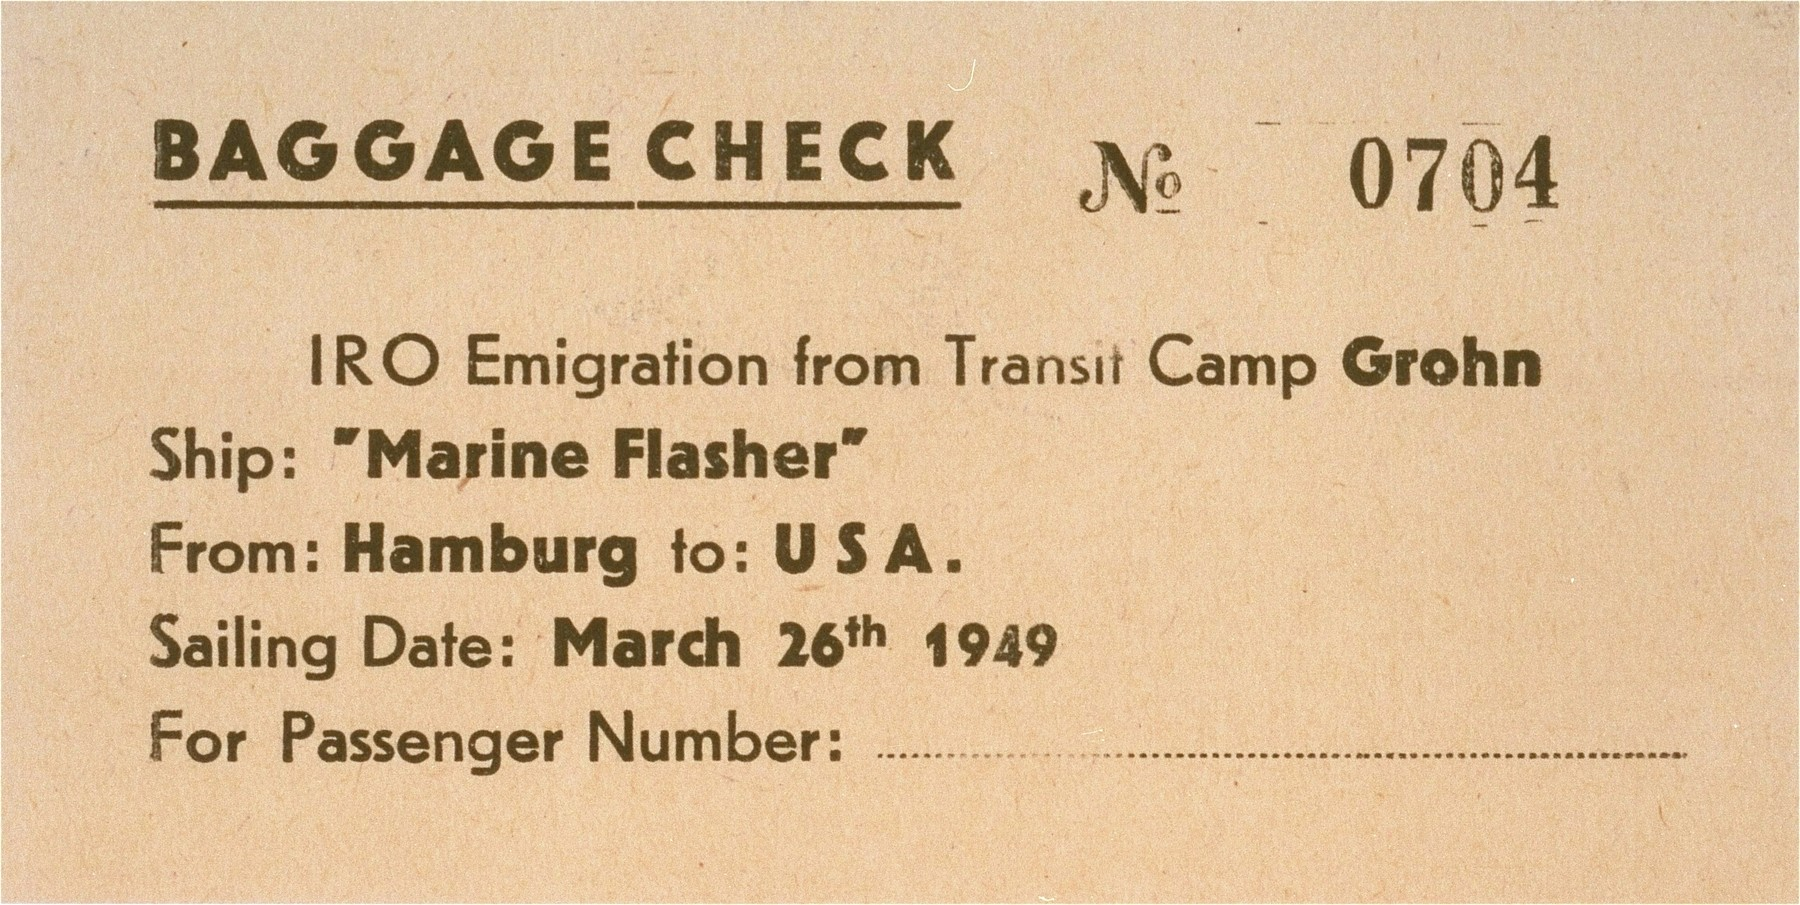 Baggage check issued by the IRO at the Grohn transit camp.    This receipt belonged to DP physician, Dr. Naum Wortman, who sailed for New York aboard the SS Marine Flasher on March 26, 1949.